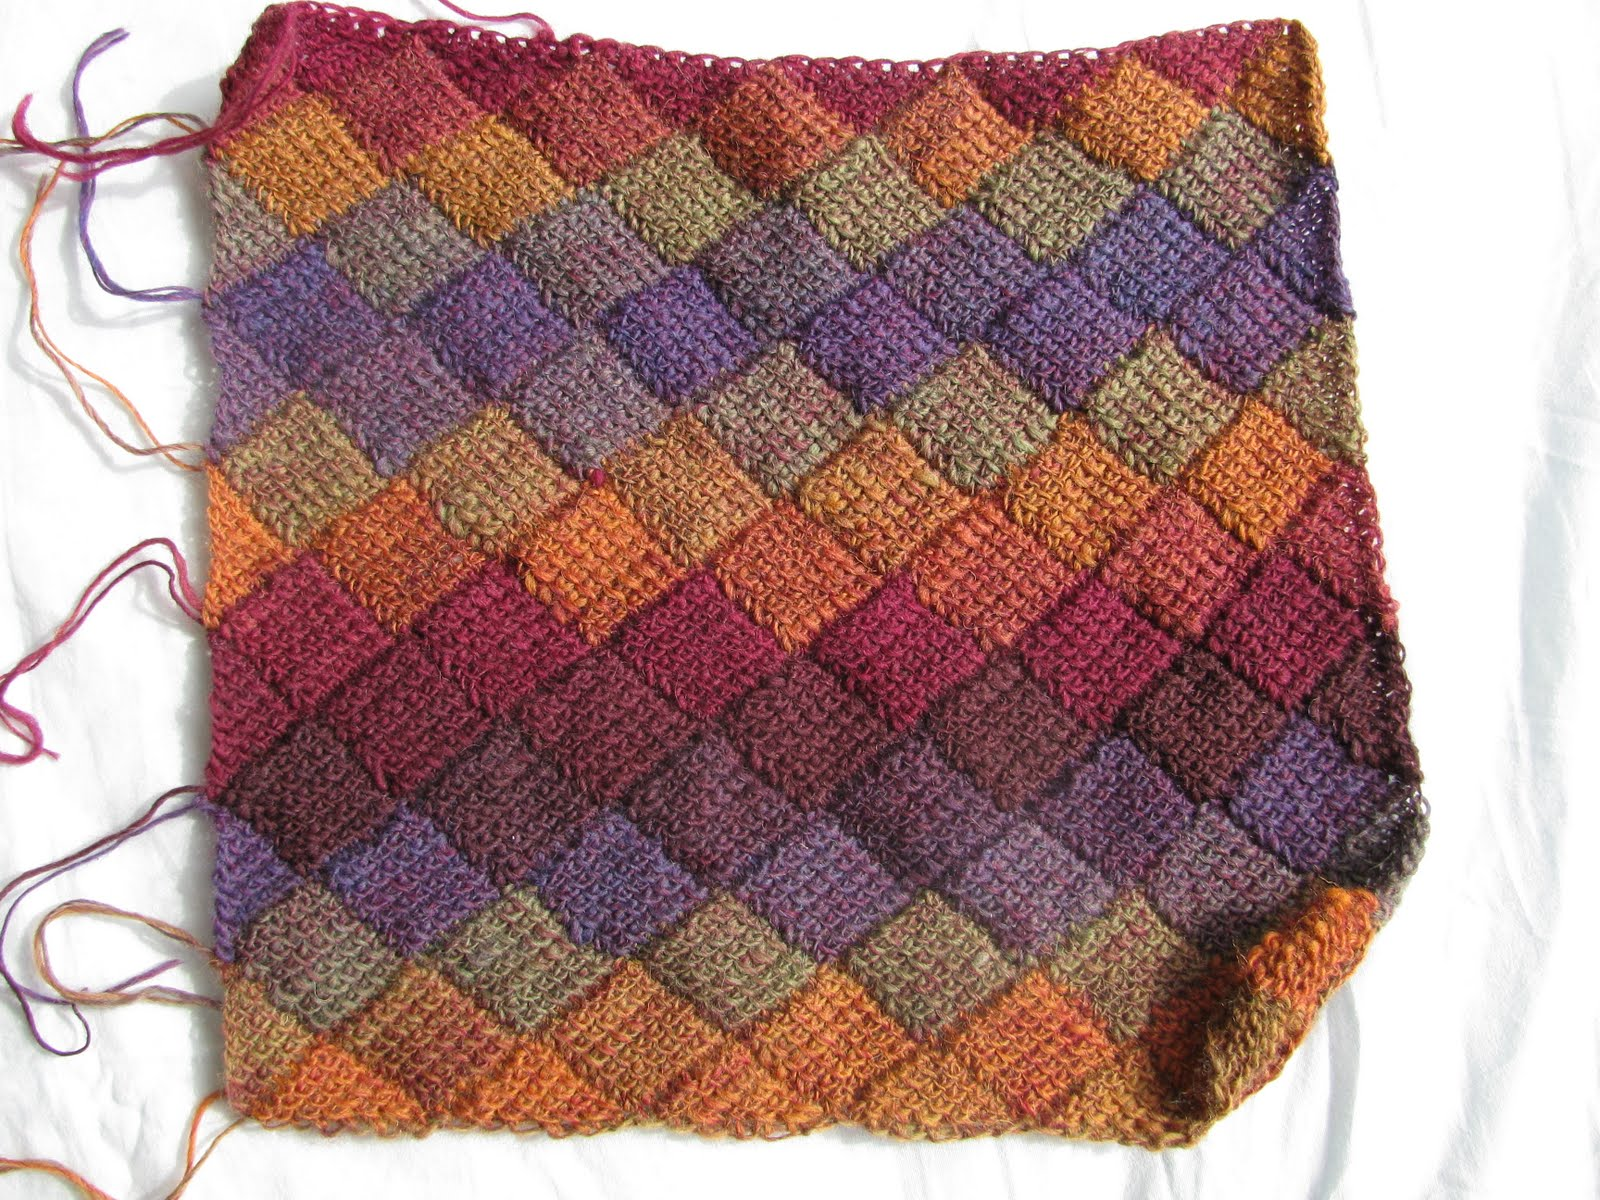 entrelac crochet you can create entrelac fabric in all sorts of different ways - knitting,  regular XEOTQXY